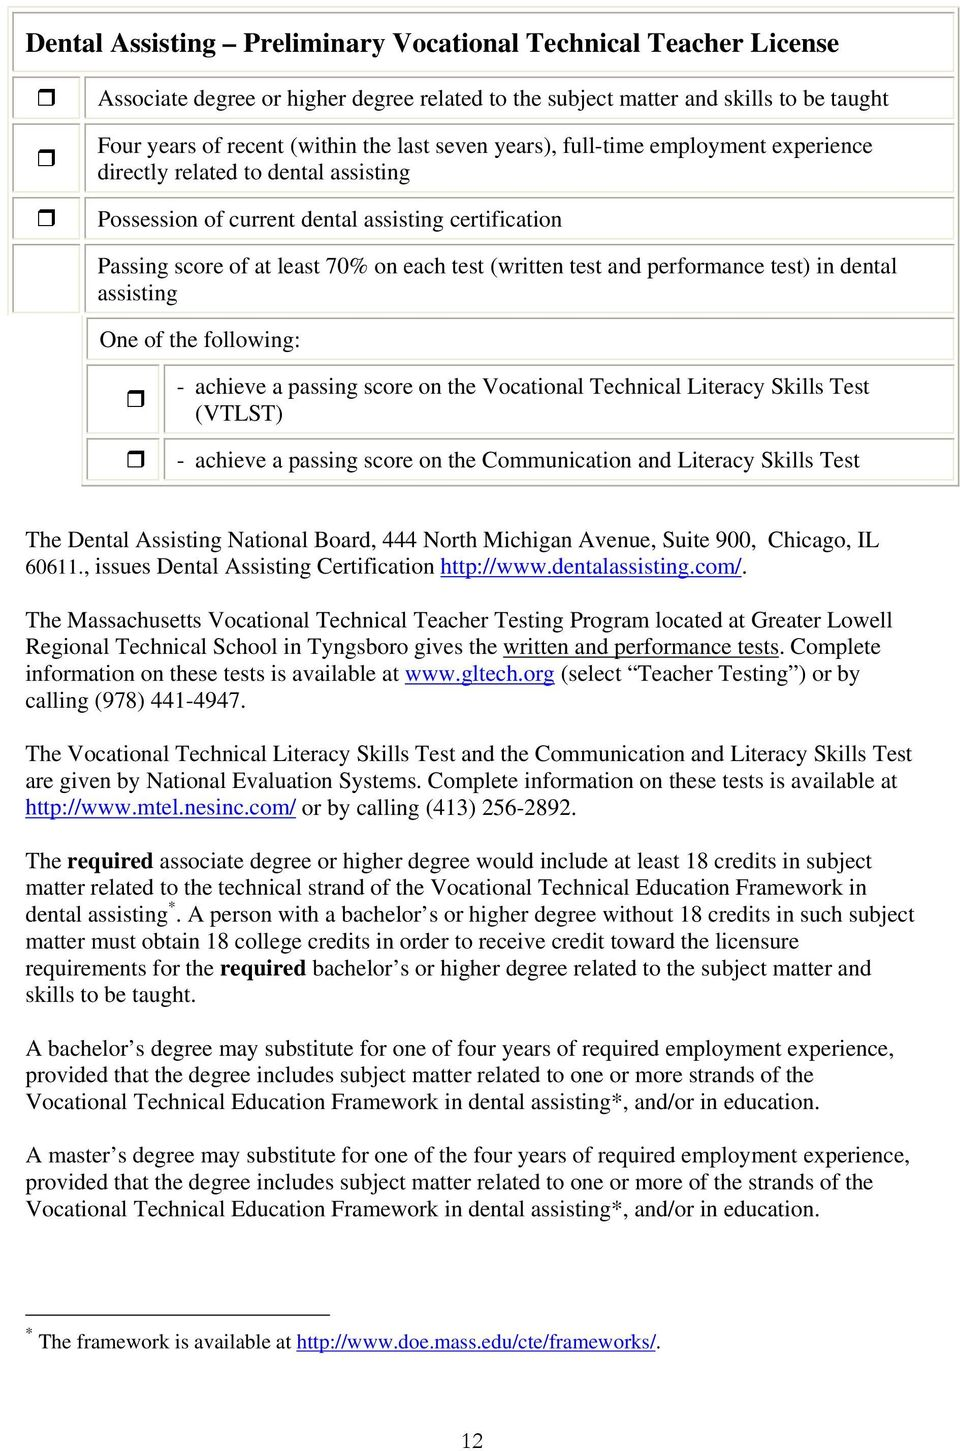 performance test) in dental assisting The Dental Assisting National Board, 444 North Michigan Avenue, Suite 900, Chicago, IL 60611., issues Dental Assisting Certification http://www.dentalassisting.